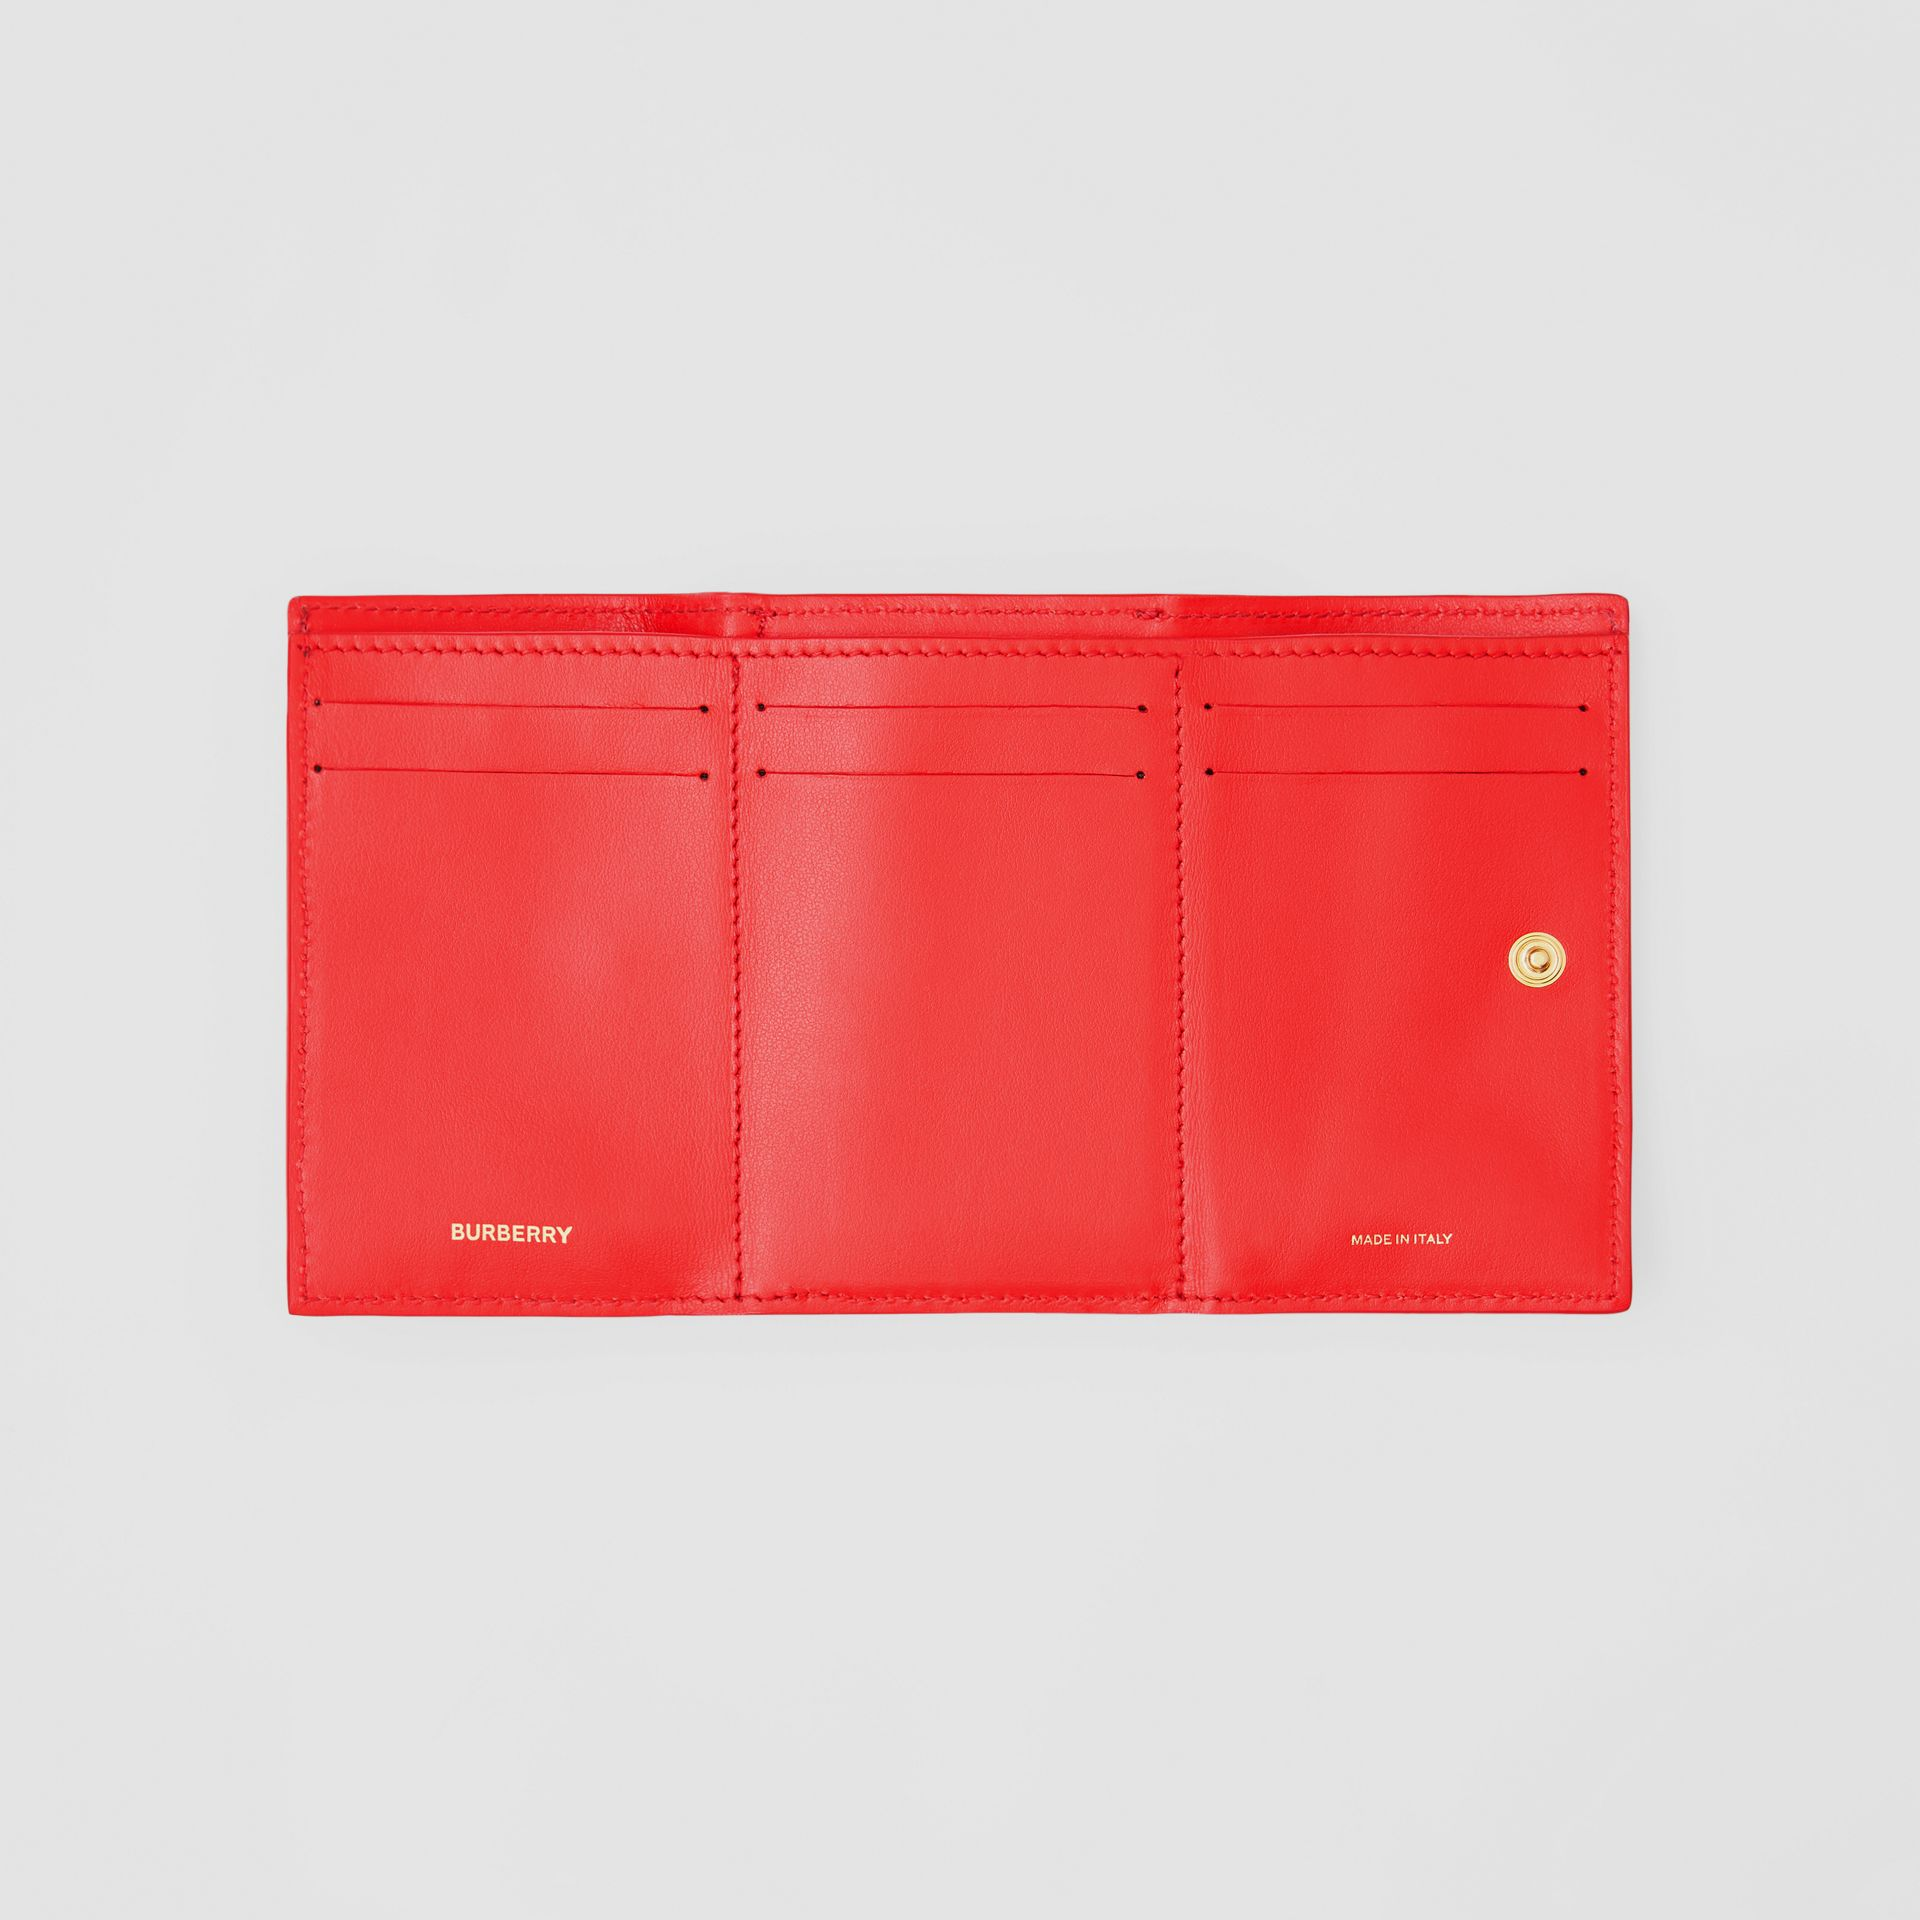 Small Grainy Leather Folding Wallet in Bright Red - Women | Burberry - gallery image 2